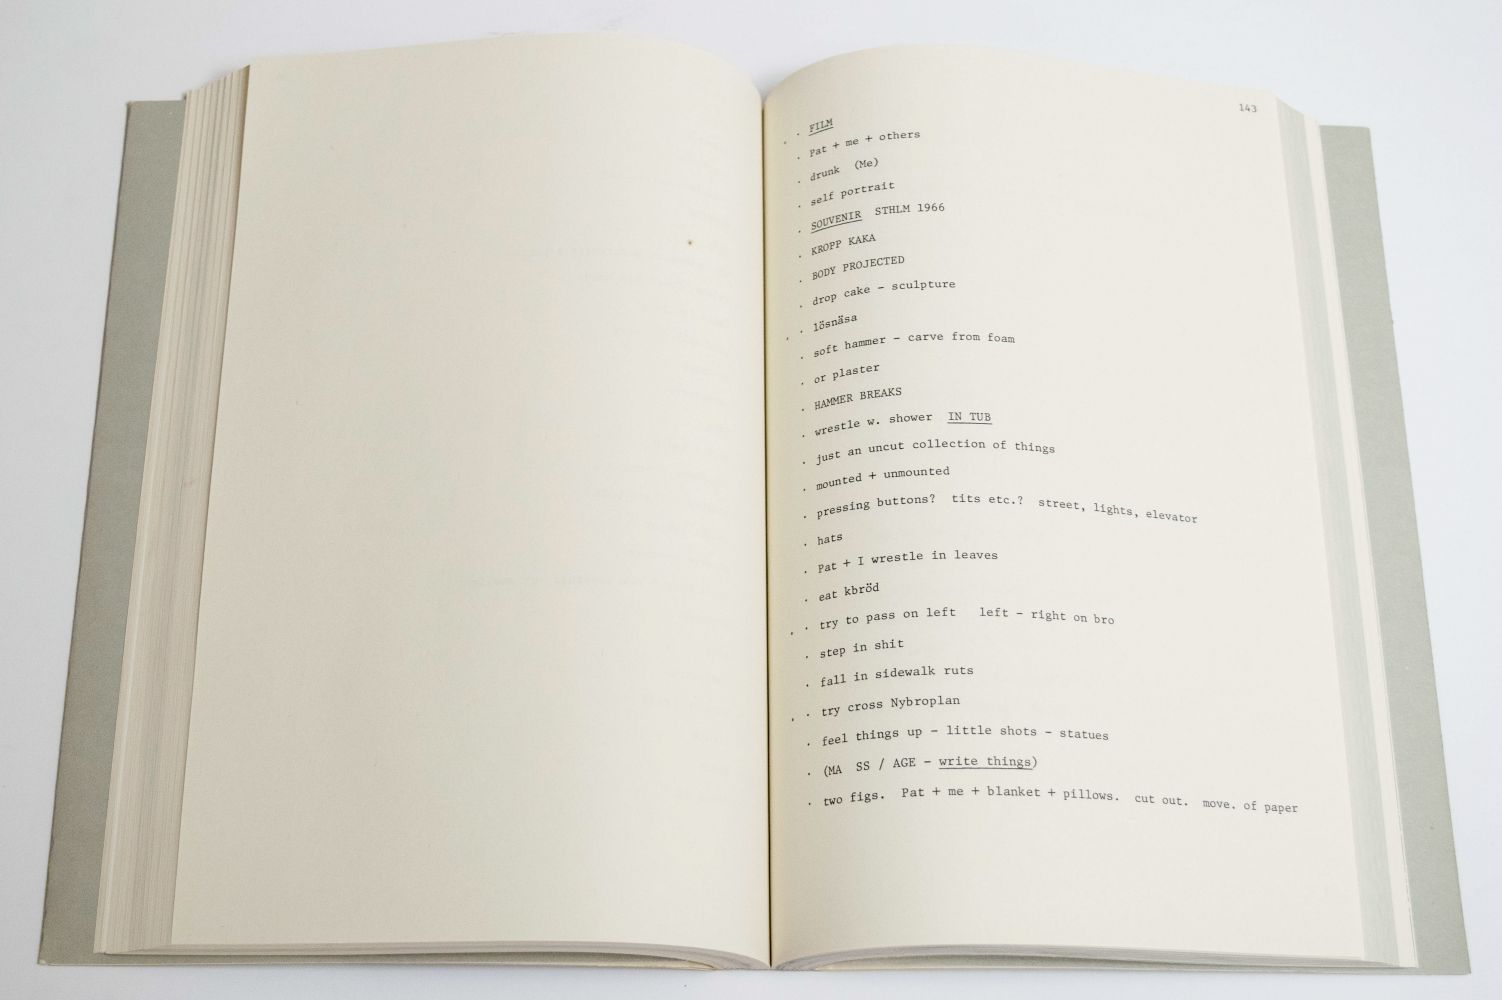 Claes Oldenburg Raw Notes, 1974 reprinted in 2005